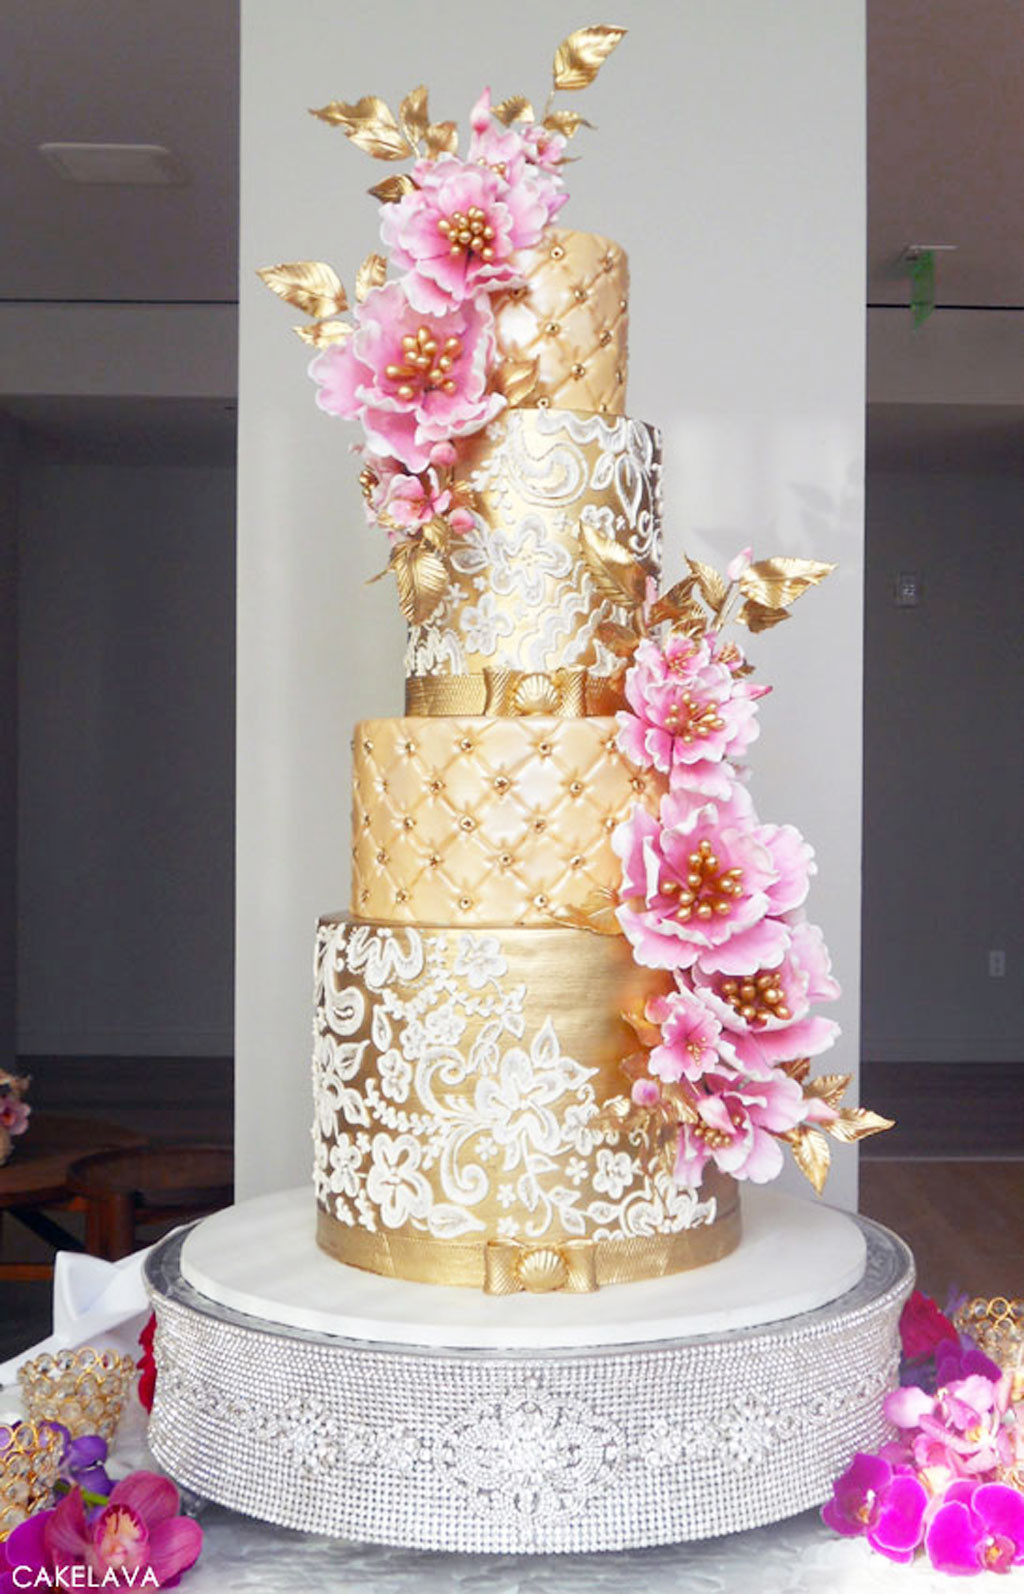 Pics Of Wedding Cakes  Wedding Cakes Oahu 6 Wedding Cake Cake Ideas by Prayface